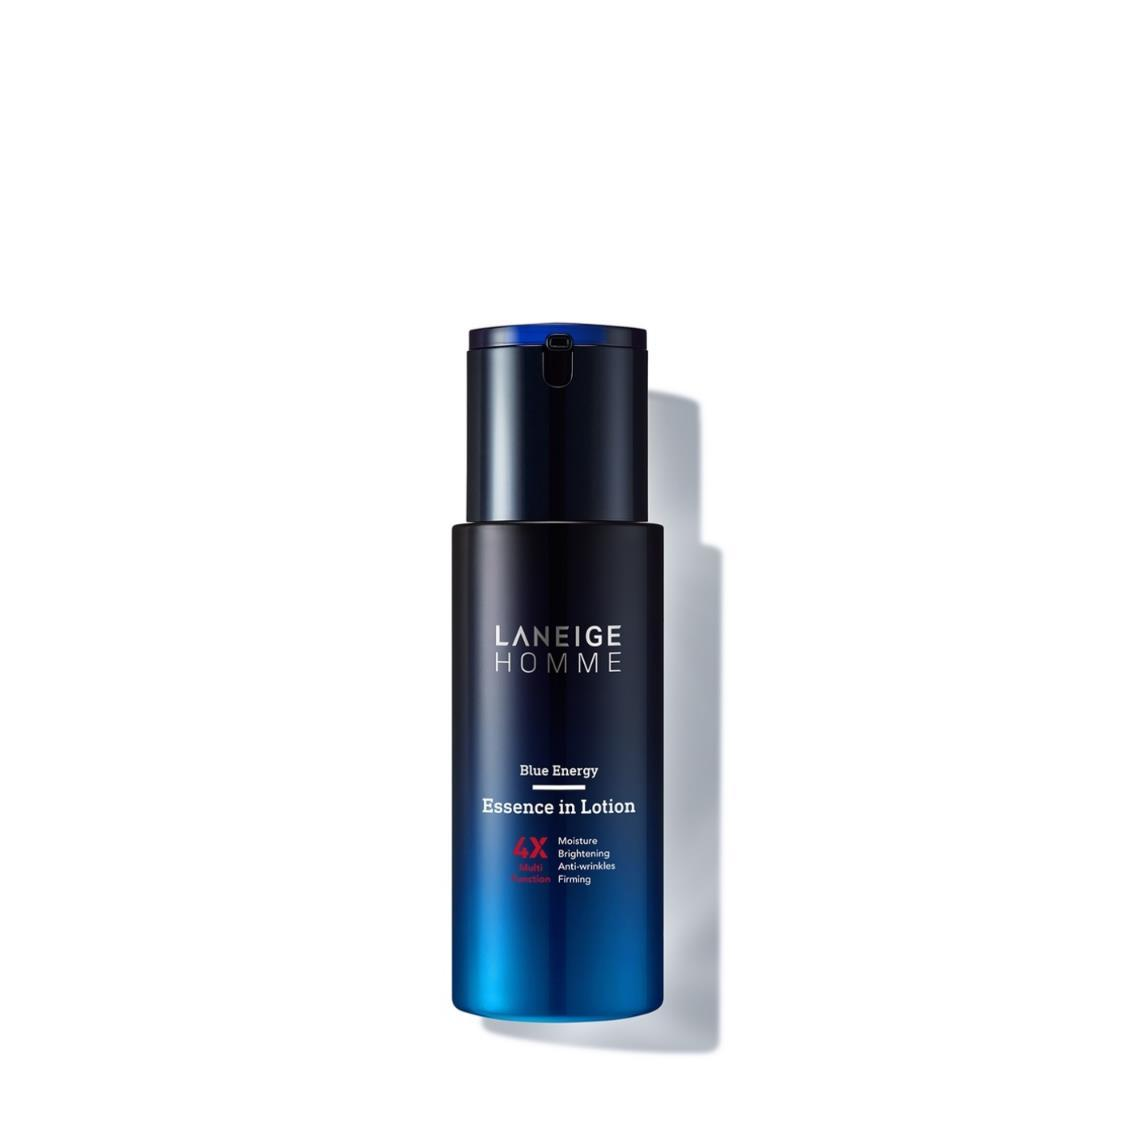 Laneige Blue Energy Essence in Lotion